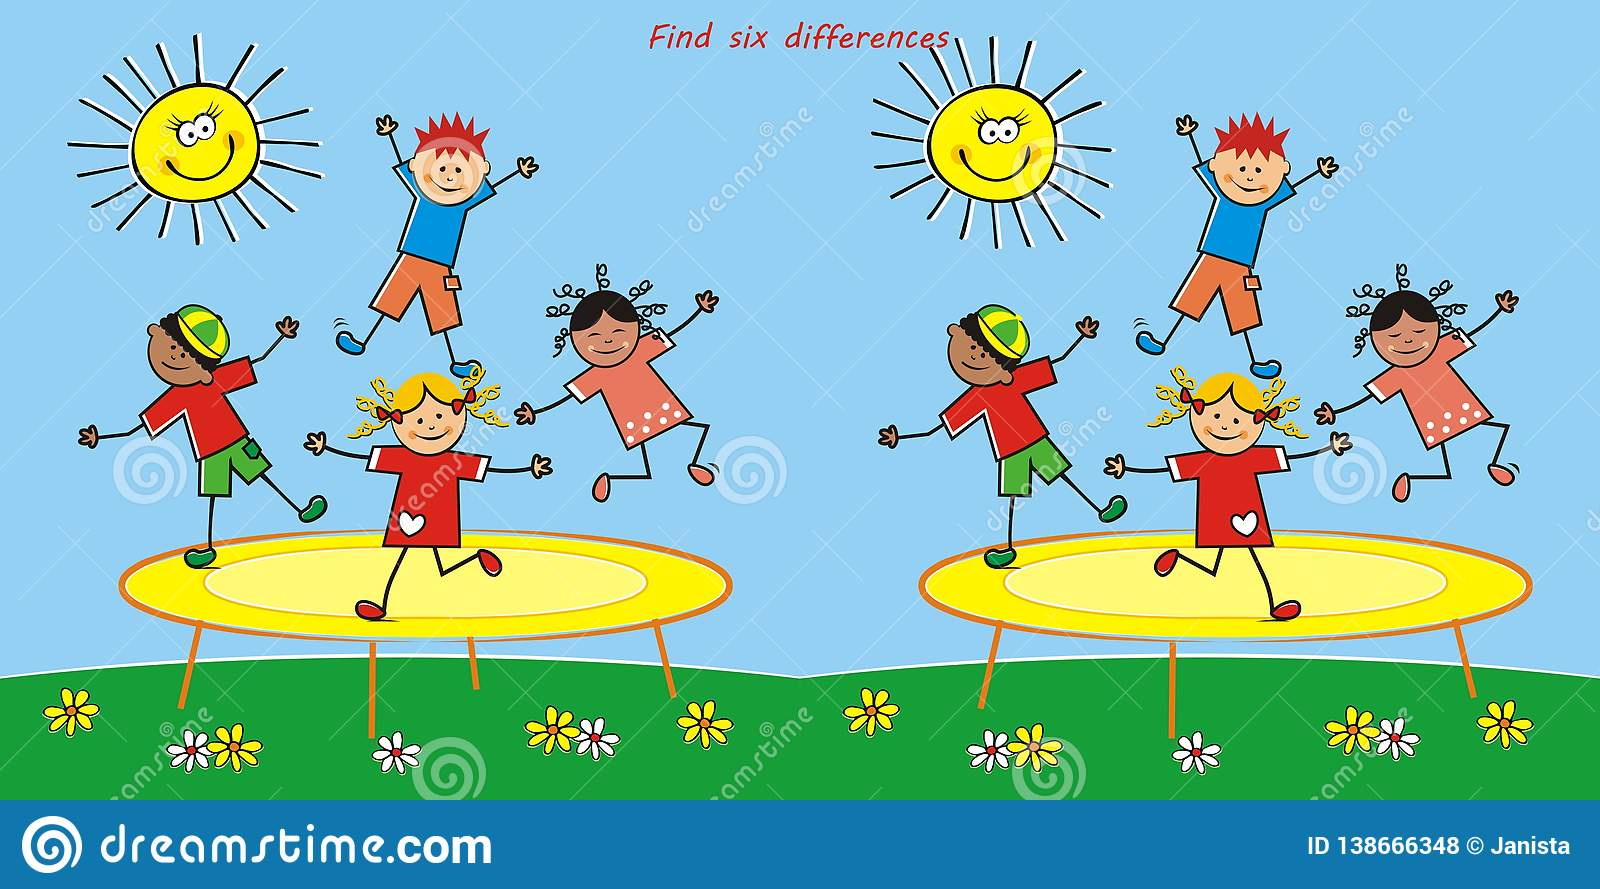 Find Board board game, find six differences, jumping kids on trampoline